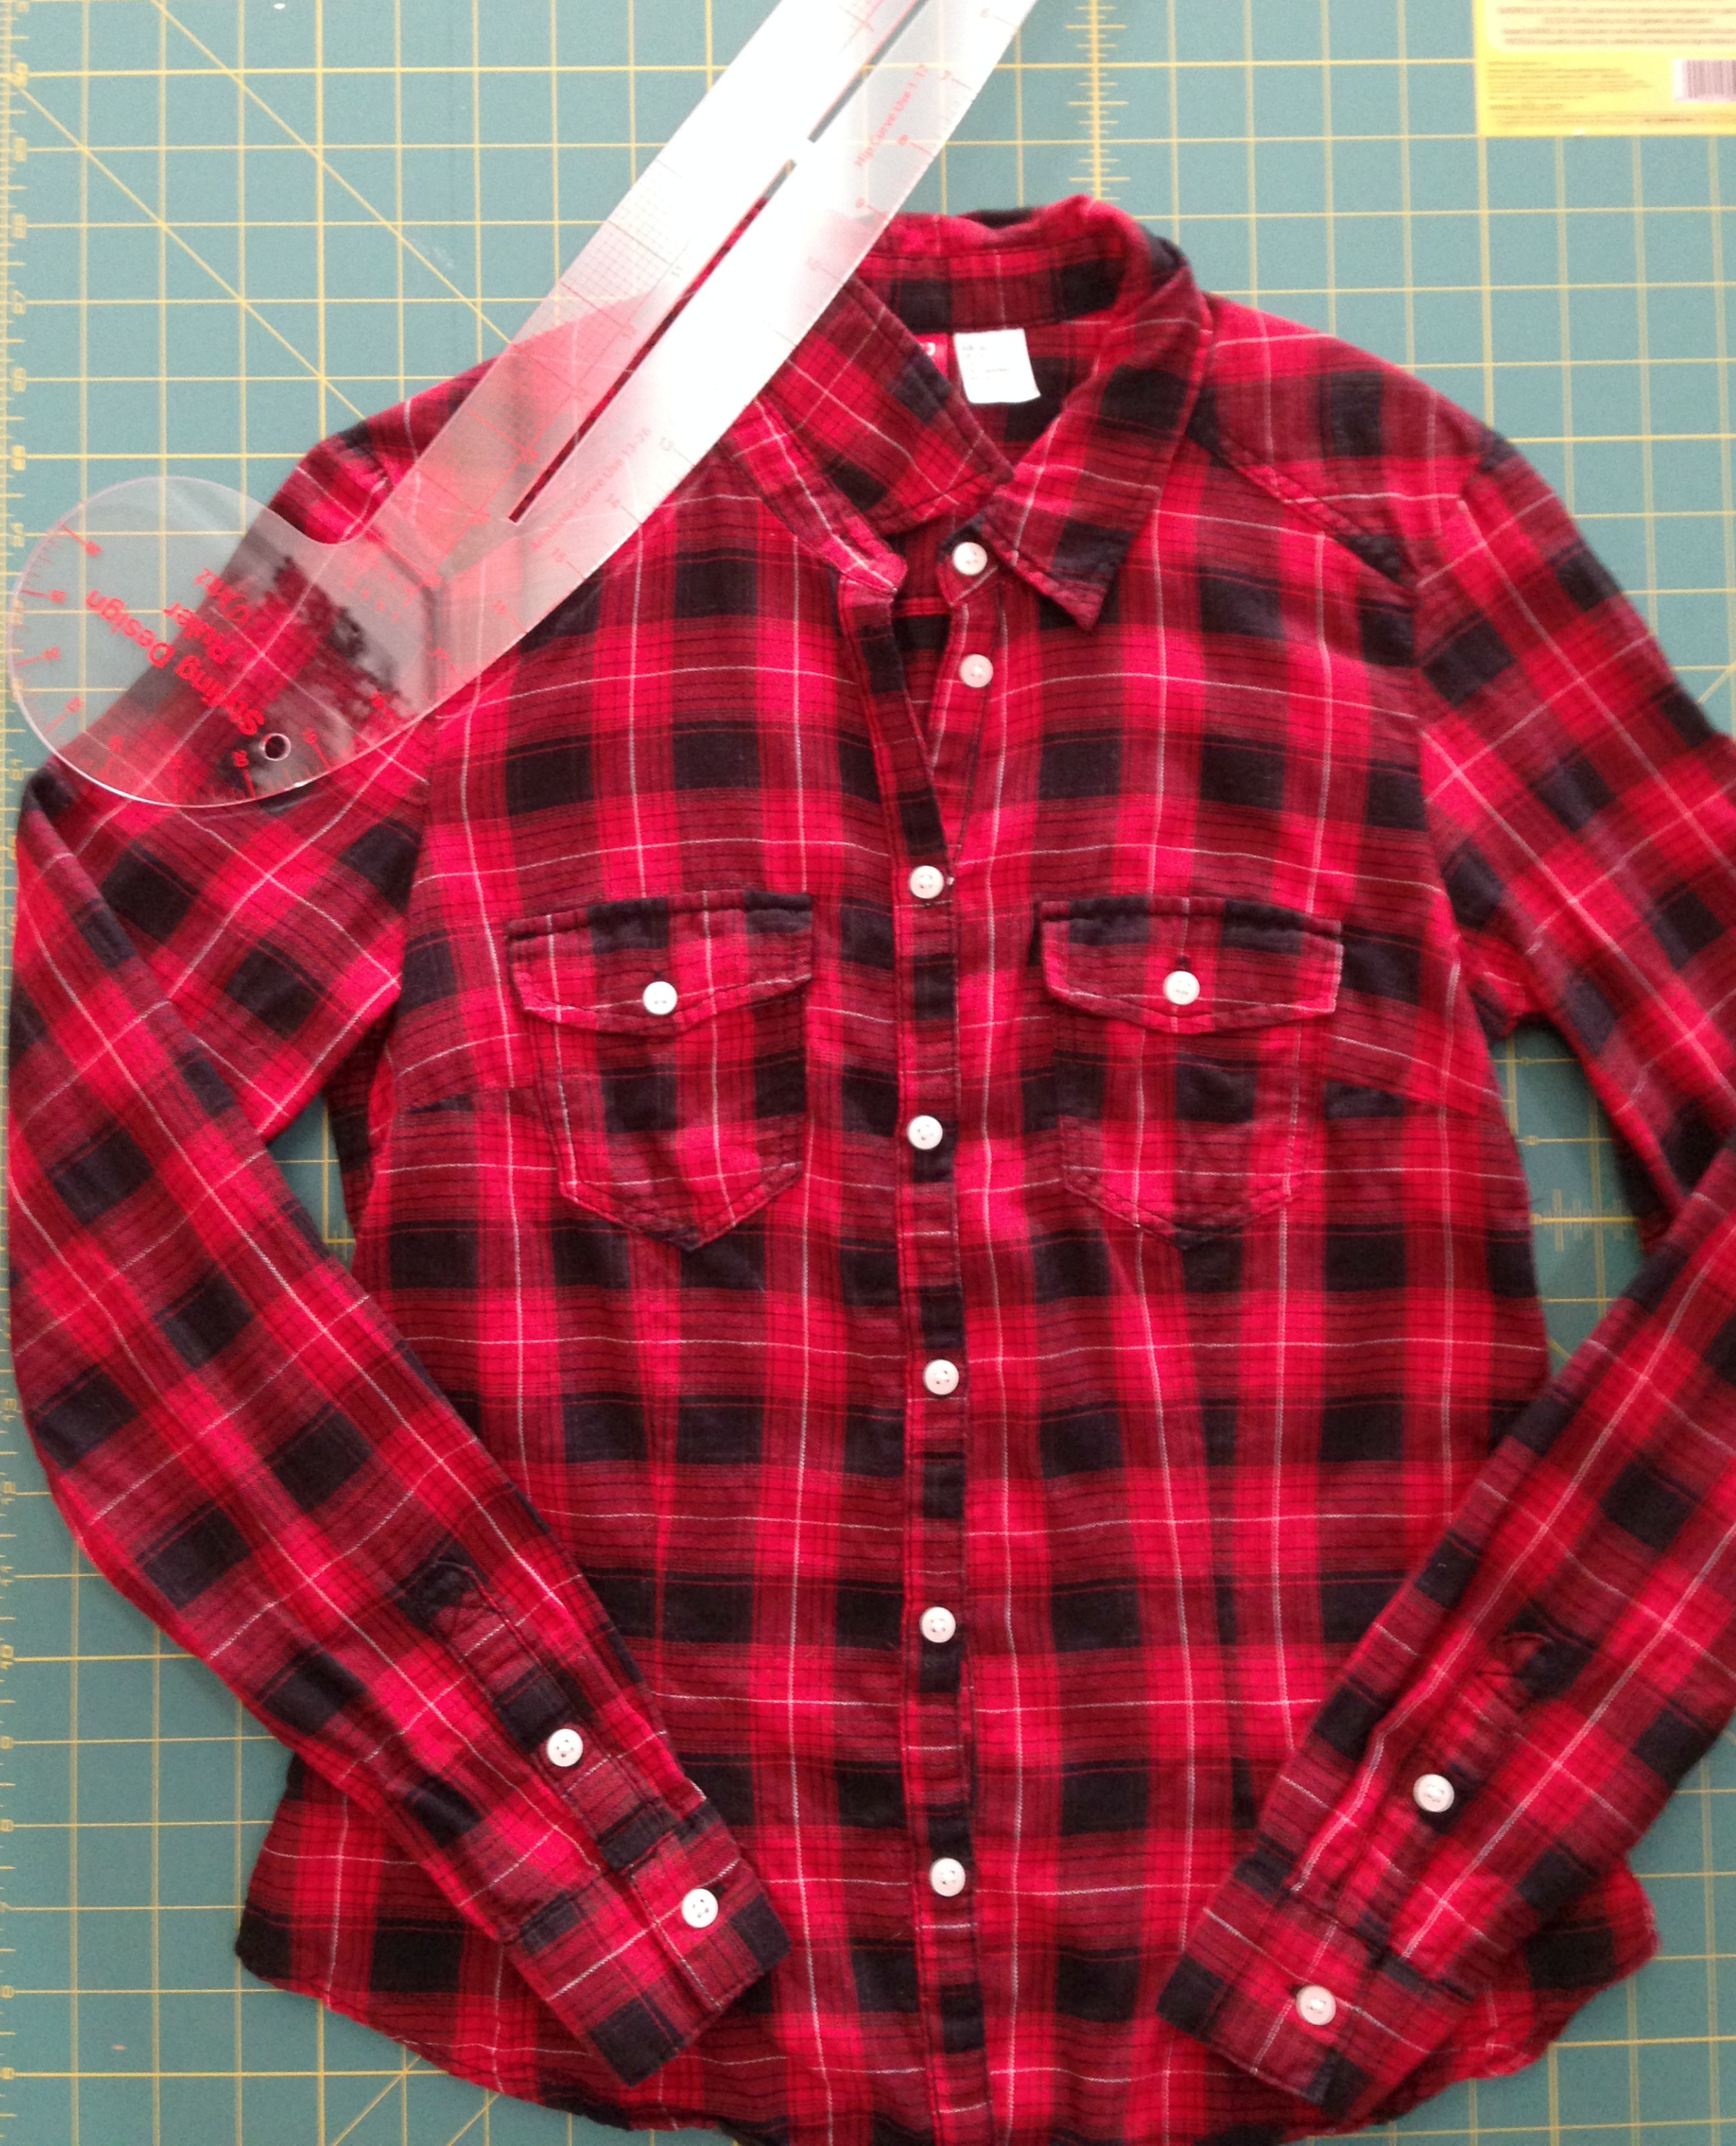 Cold Shoulder Flannel Shirt Refashion - Mark cold shoulder holes